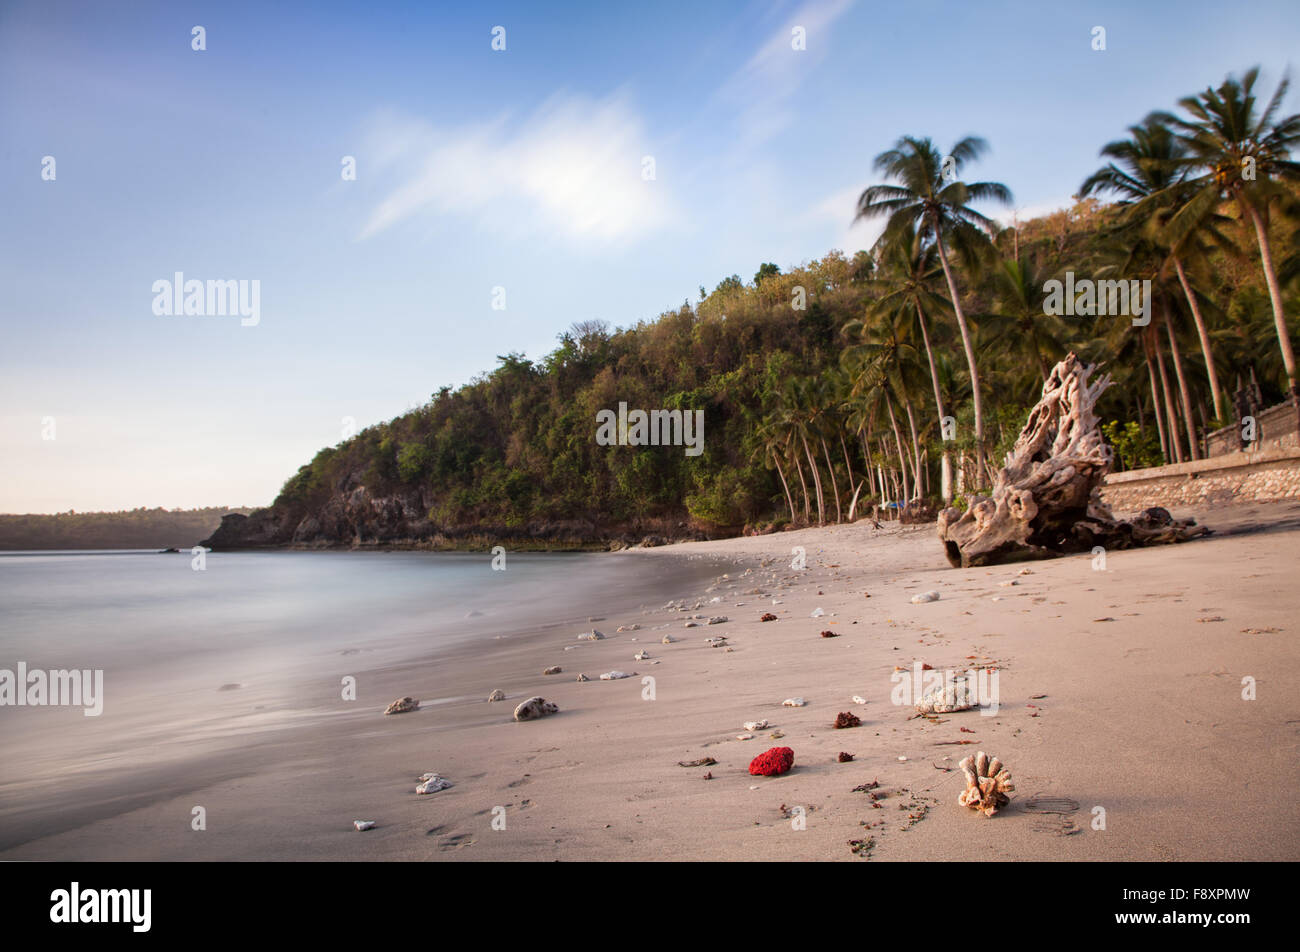 Crystal Bay Beach, remote, wild and untouched natural beach on Nusa Penida Island in Indonesia. Coconut palm fringed - Stock Image